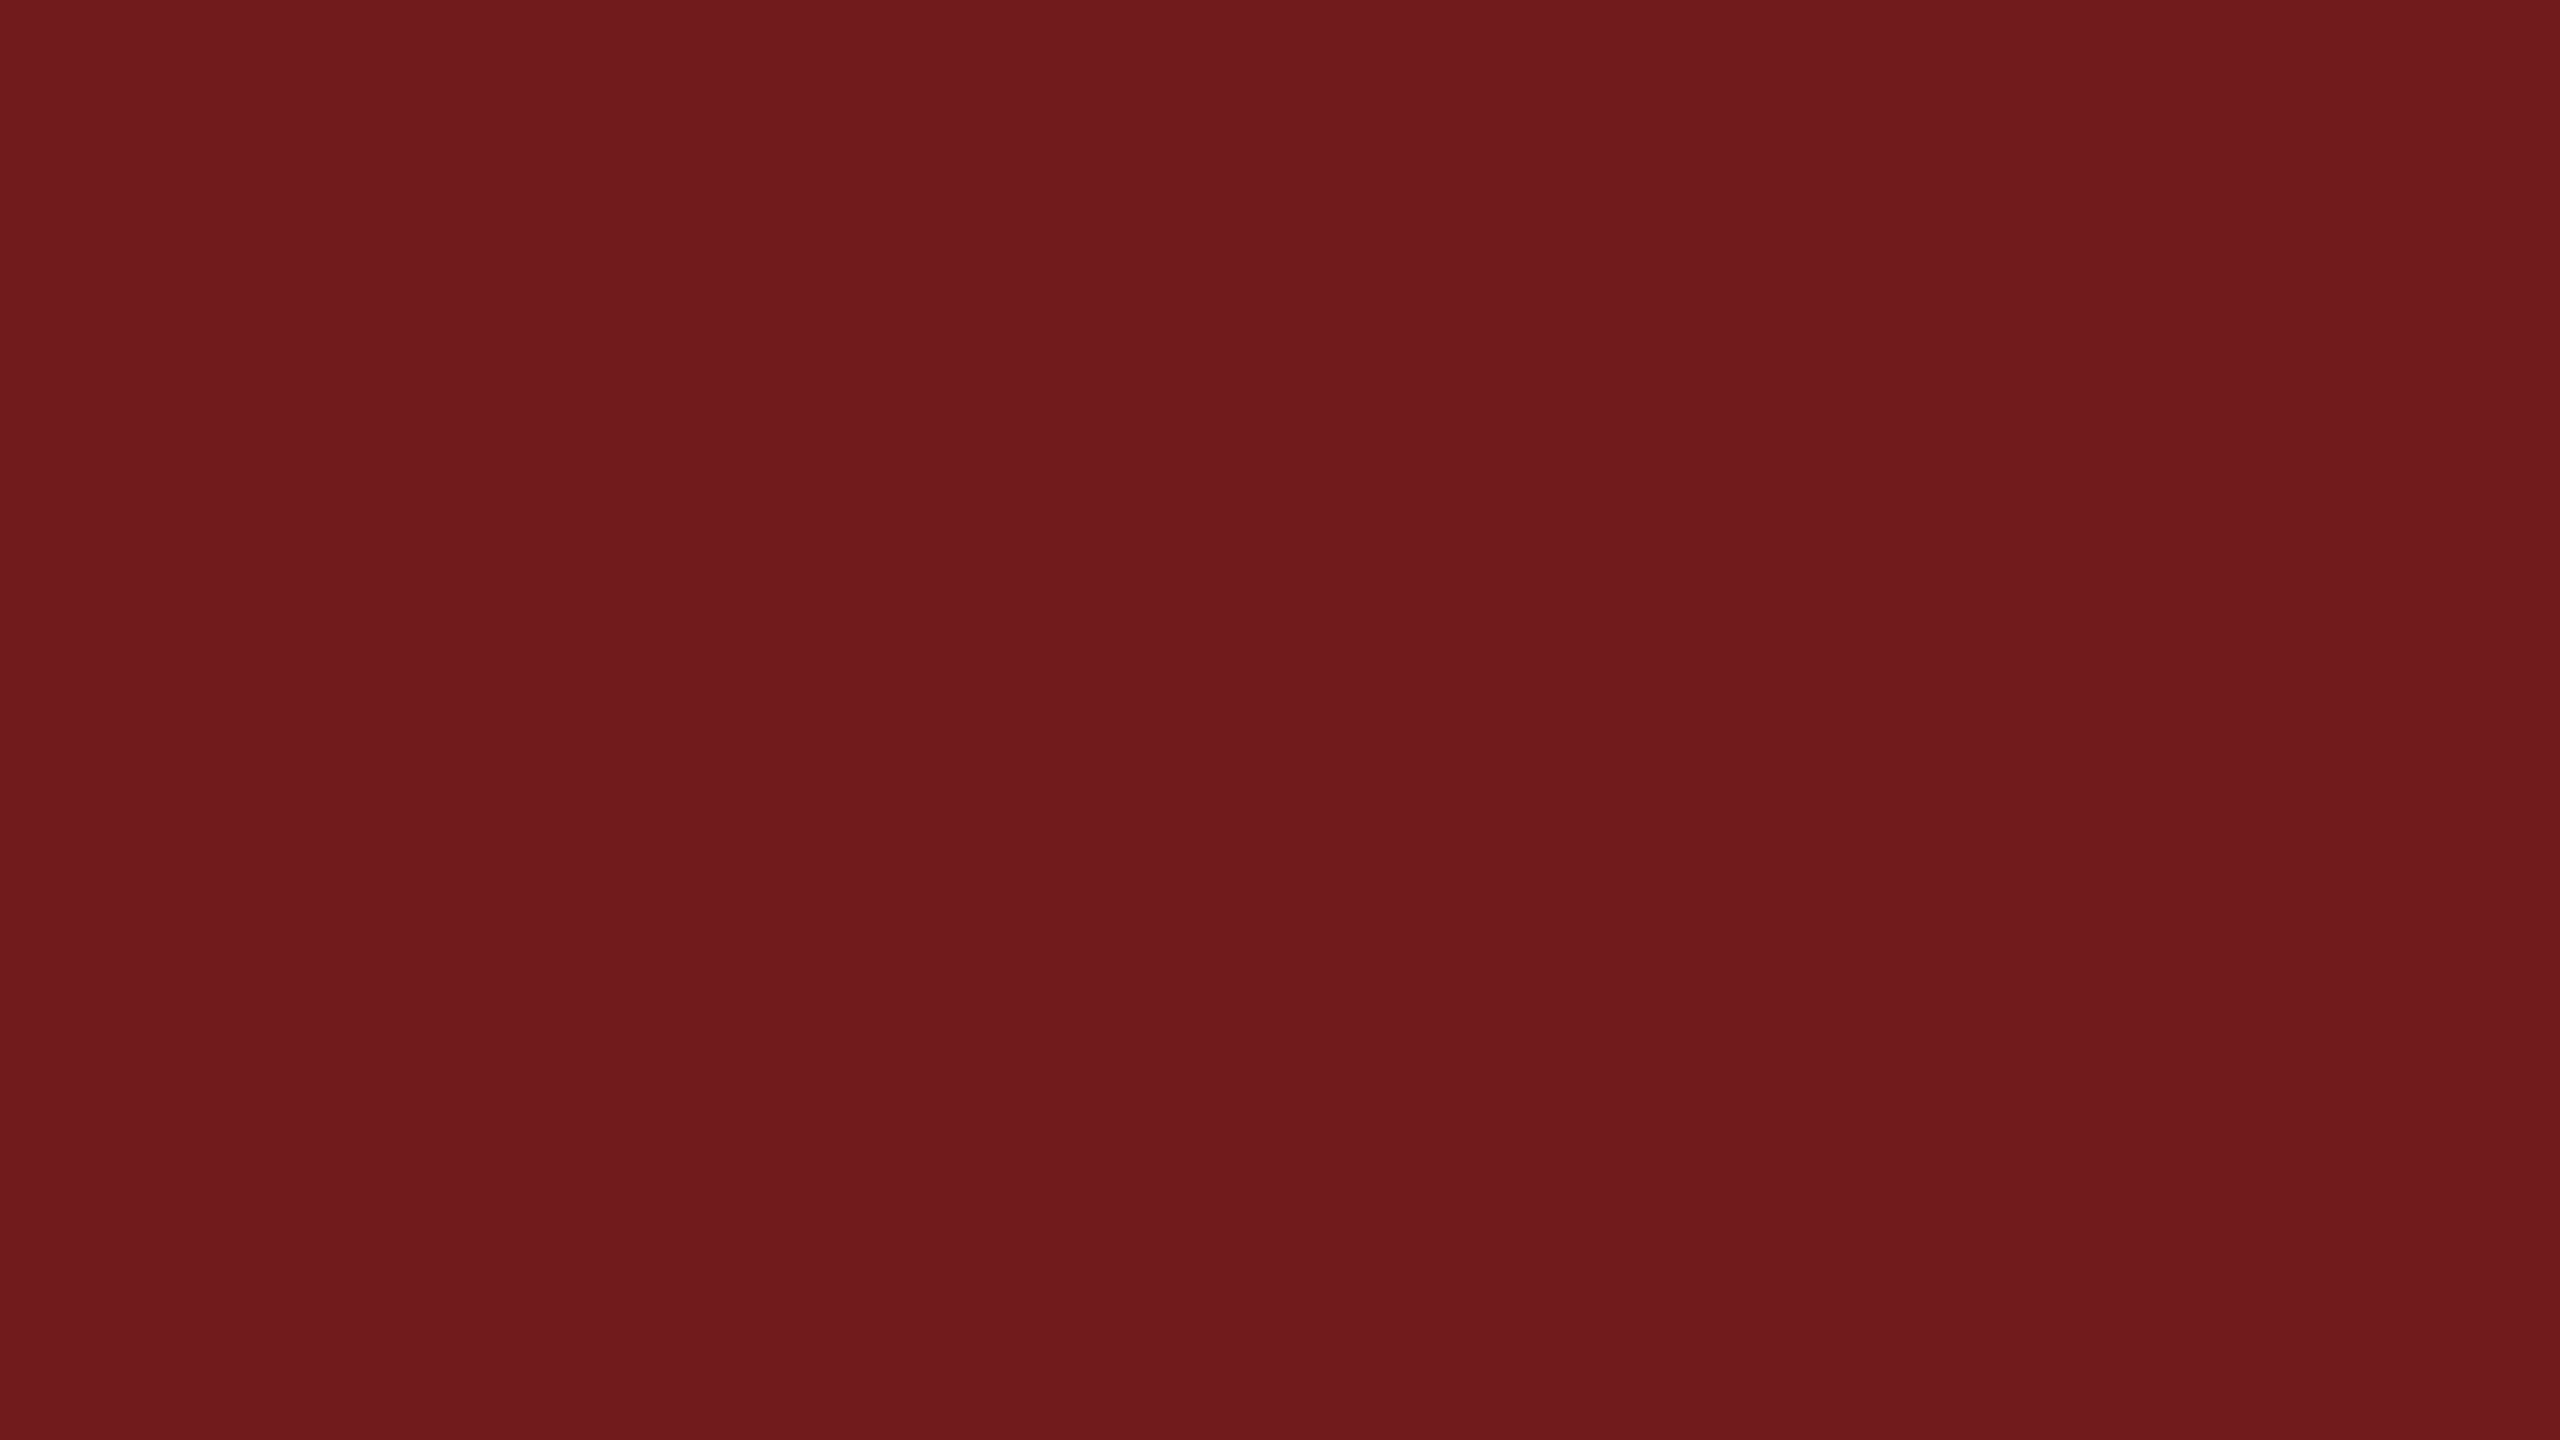 2560x1440 Persian Plum Solid Color Background 2560x1440